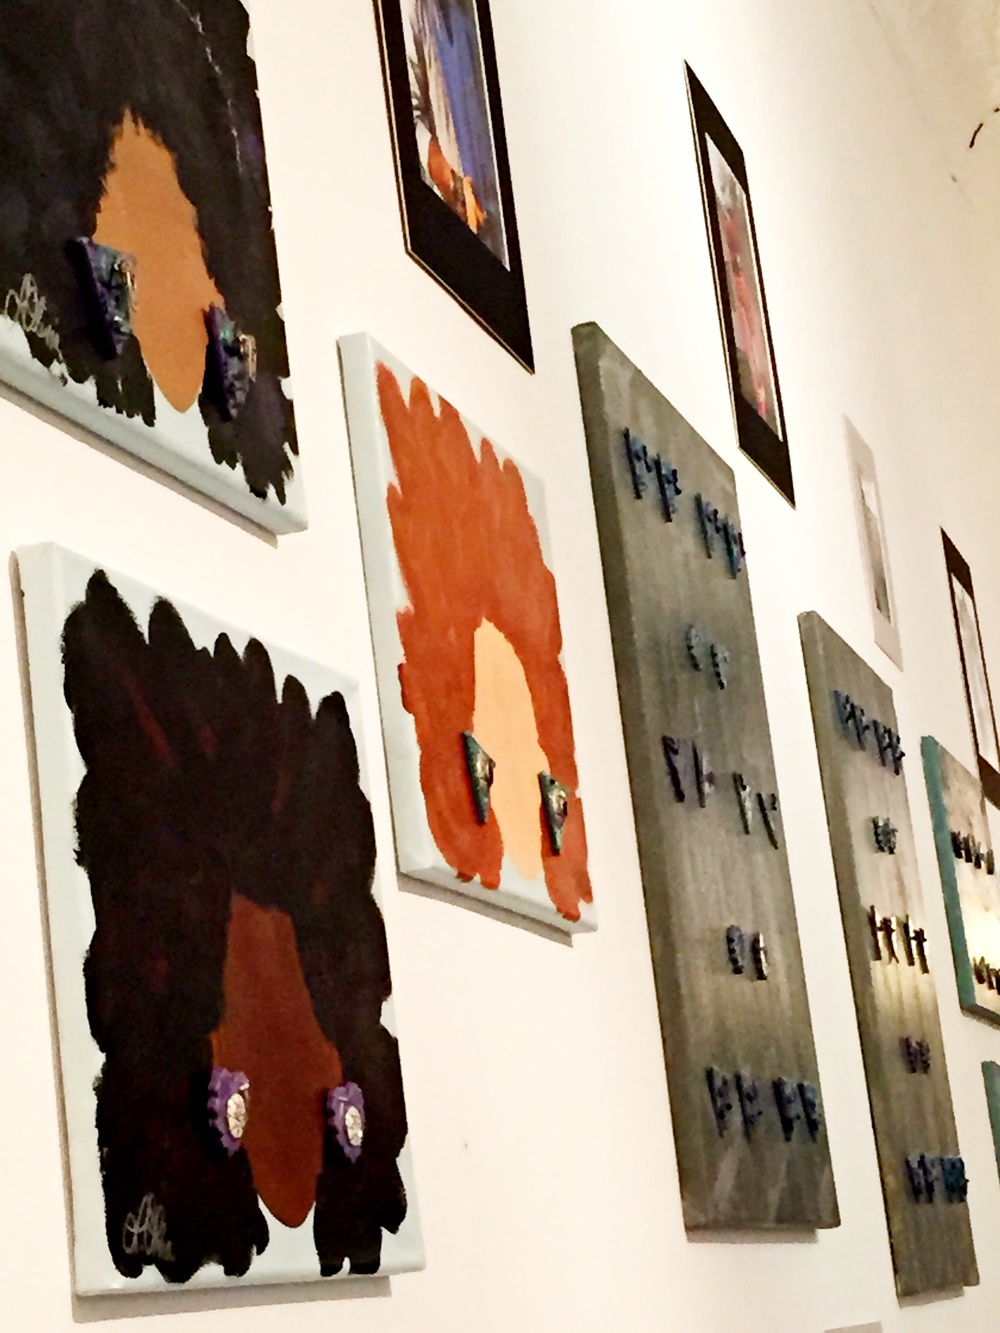 Yes, those are Earrings on a Canvas. Lauren hand-painted the naturalista silhouettes w/ her custom earrings.